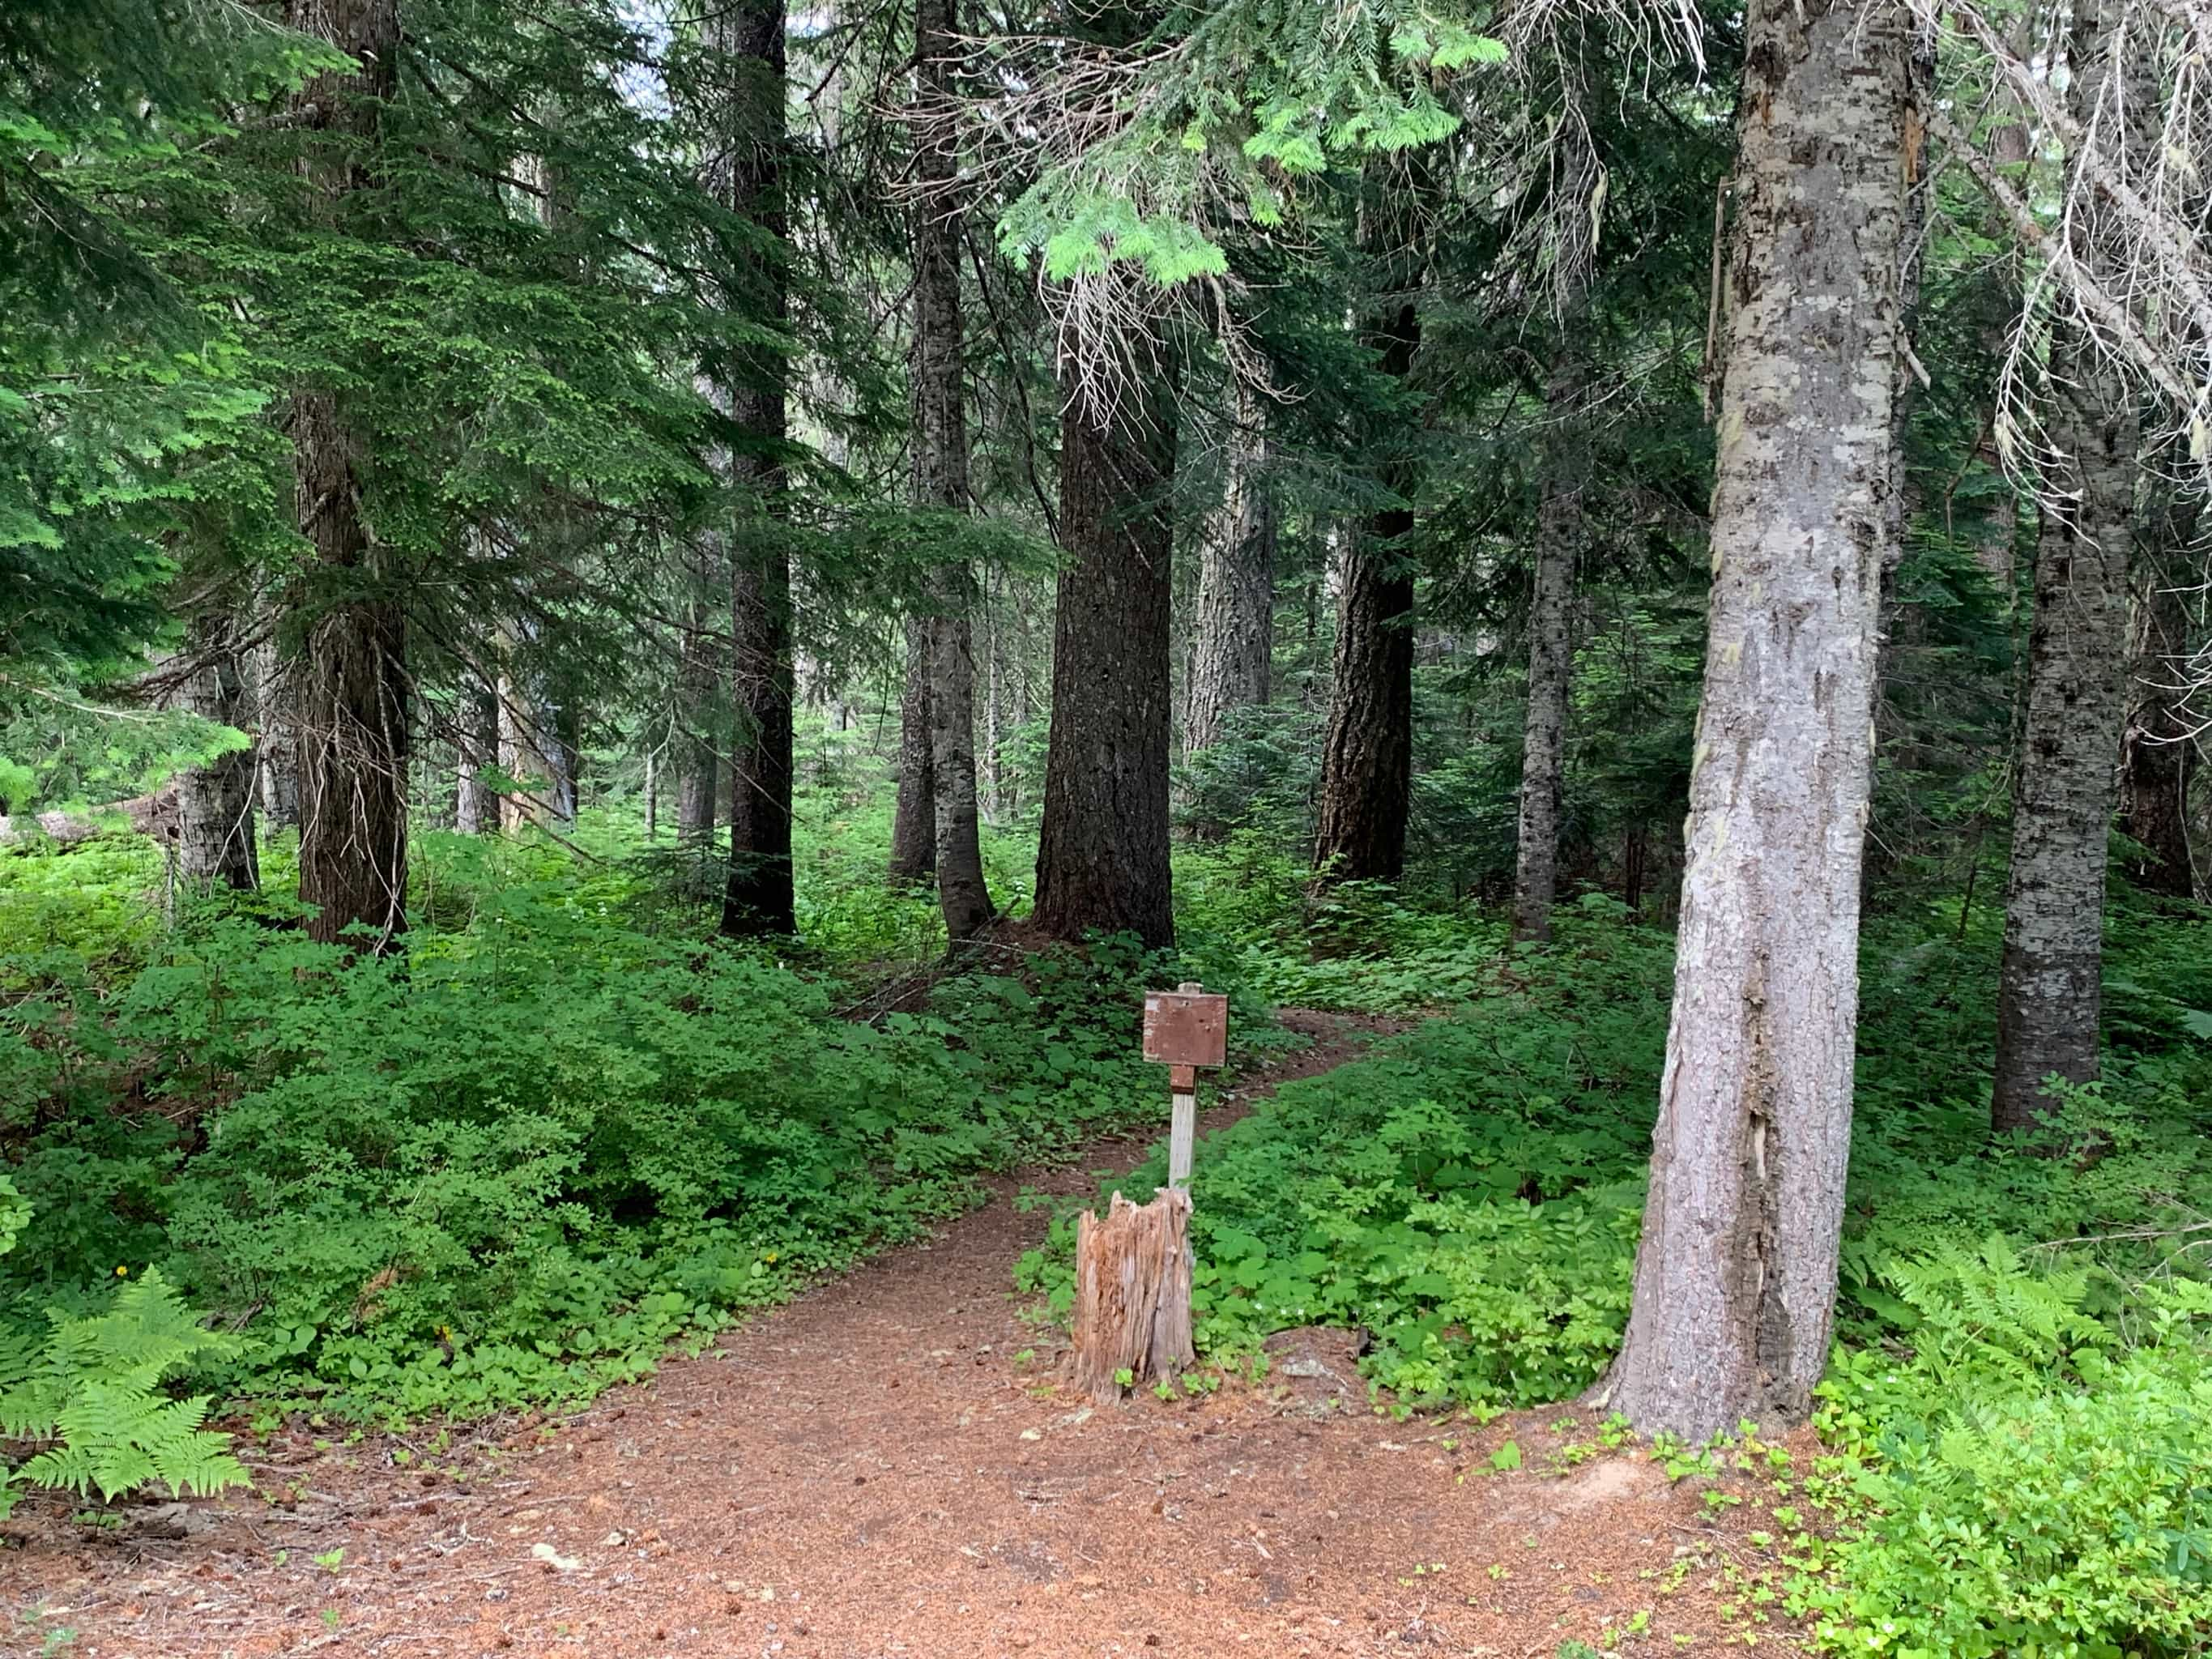 Pacific Crest Trail junction across NF-23 in Gifford Pinchot National Forest.